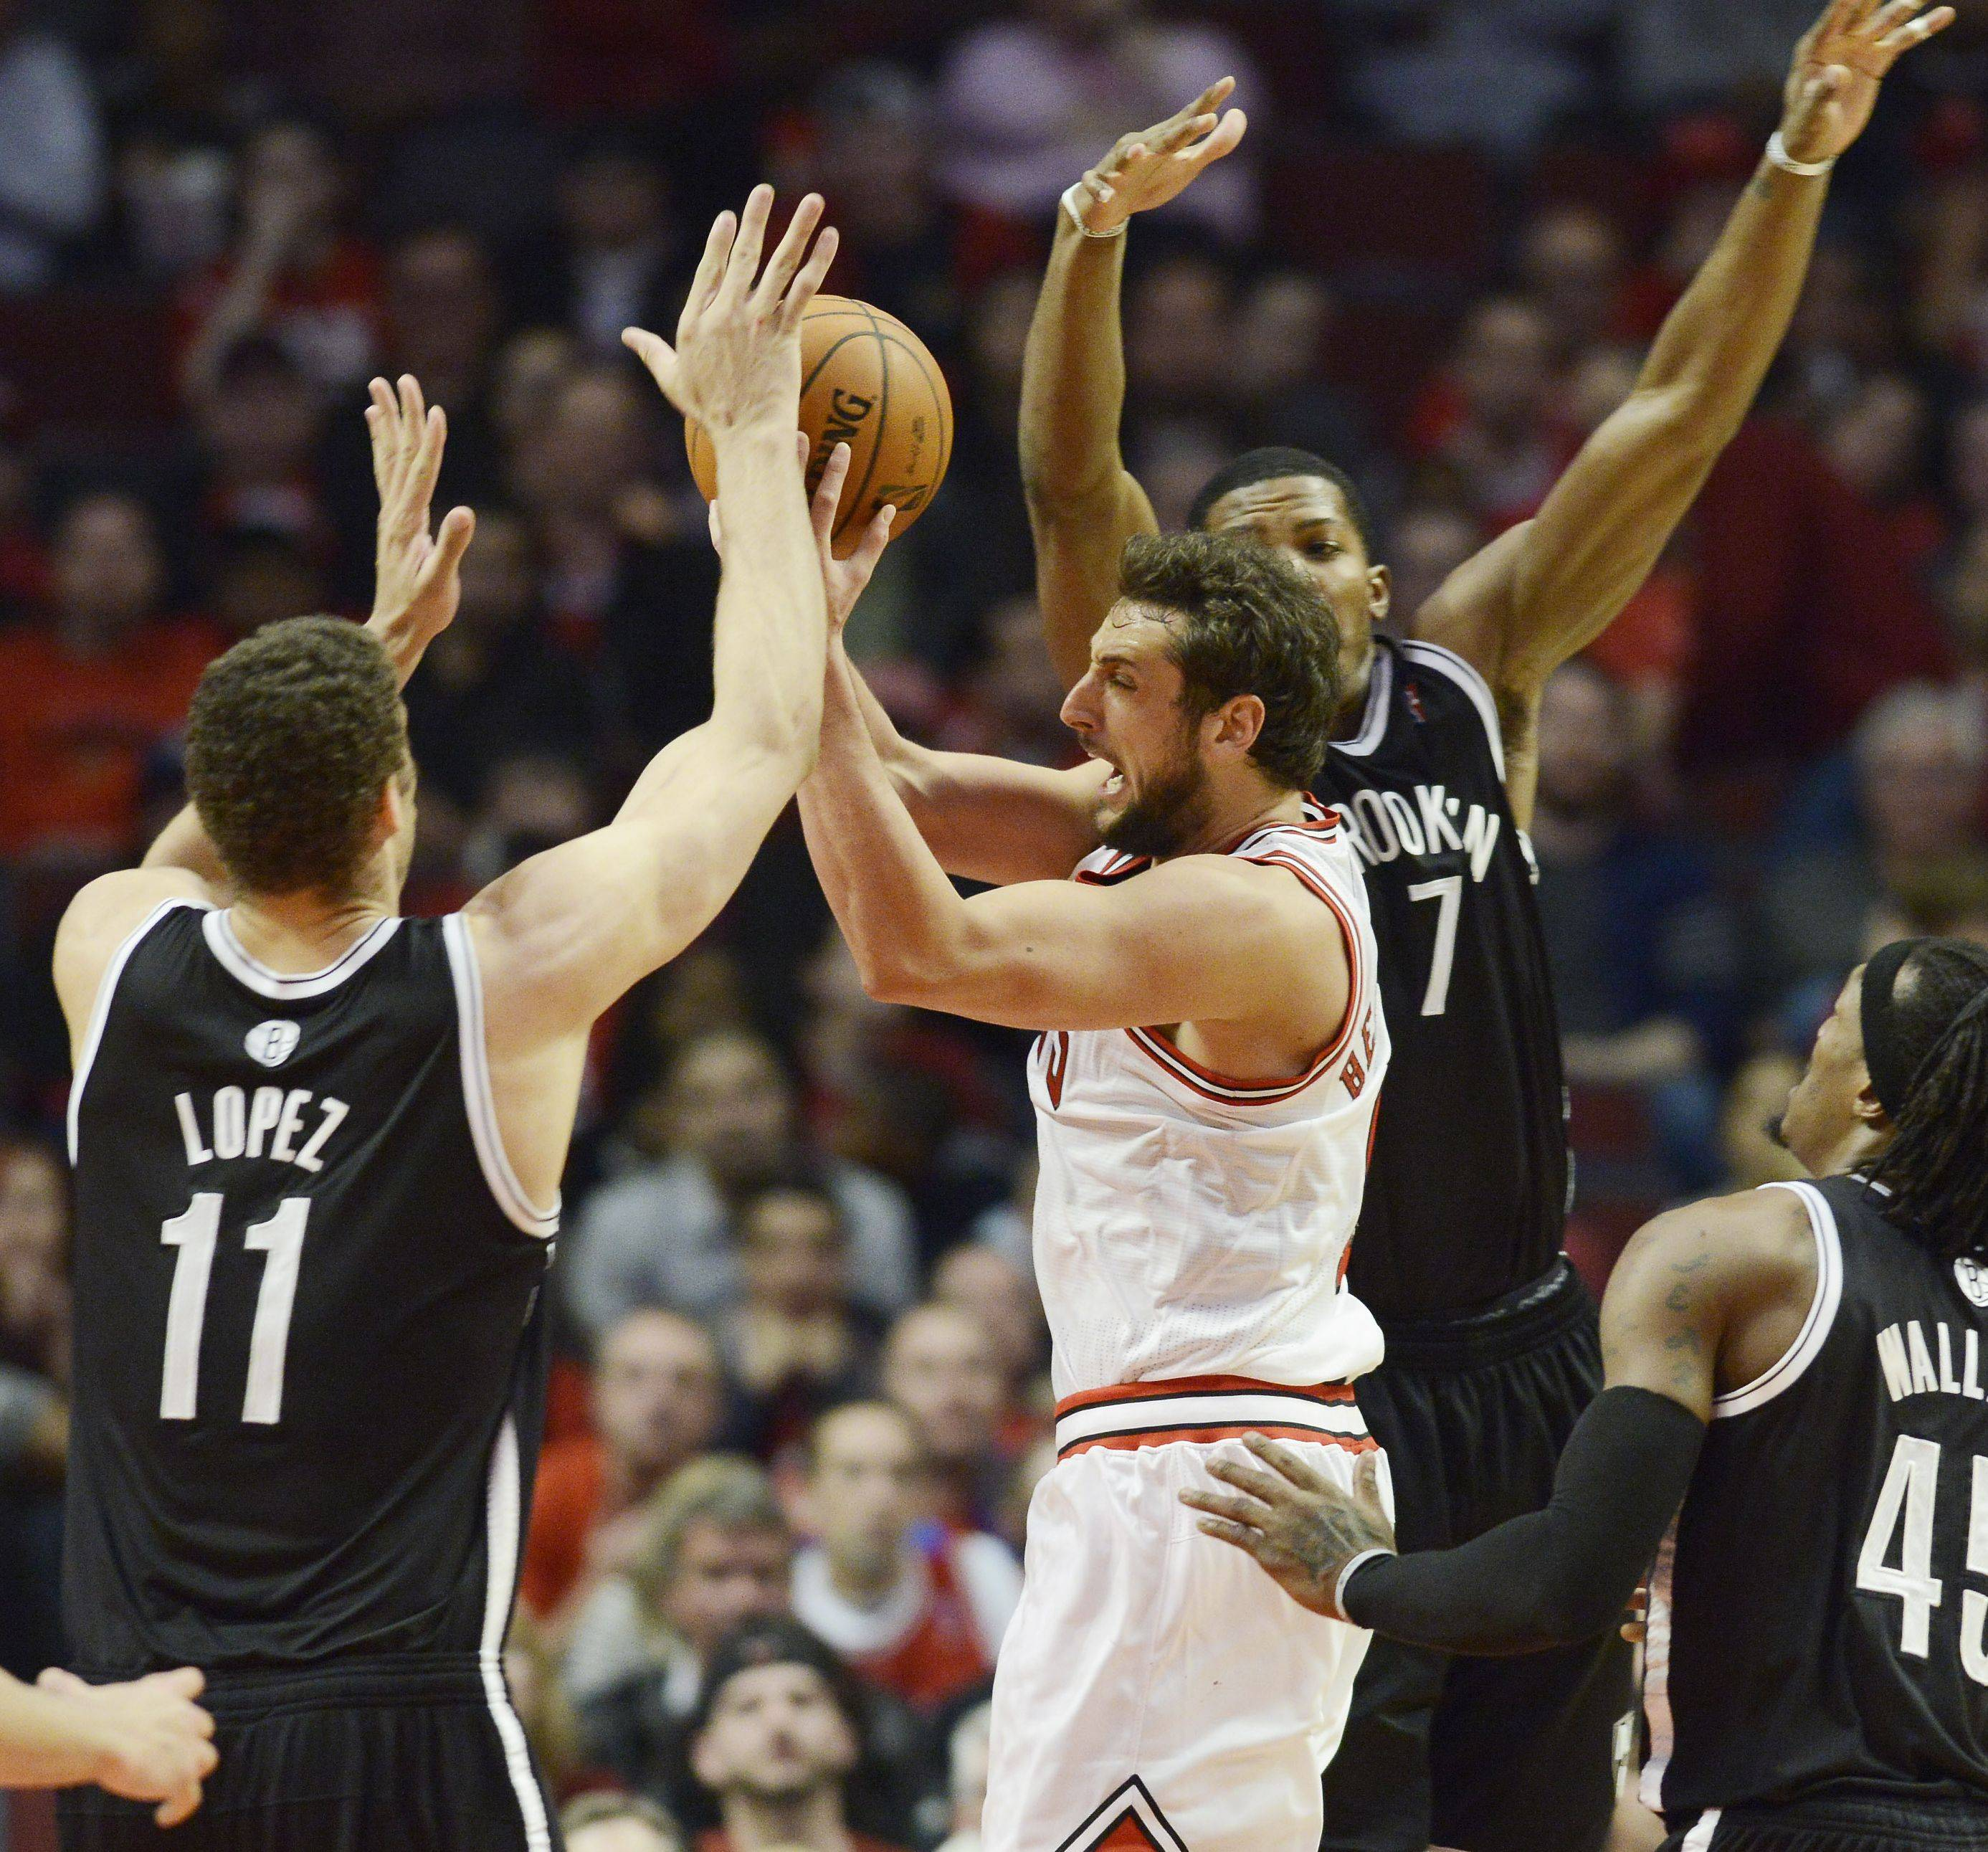 Marco Belinelli drives hard to the basket against Brook Lopez, left, and Deron Williams during the Bulls' Game 6 loss Thursday at the United Center. Belinelli missed a potential game-tying 3-pointer in the waning seconds of the fourth quarter.